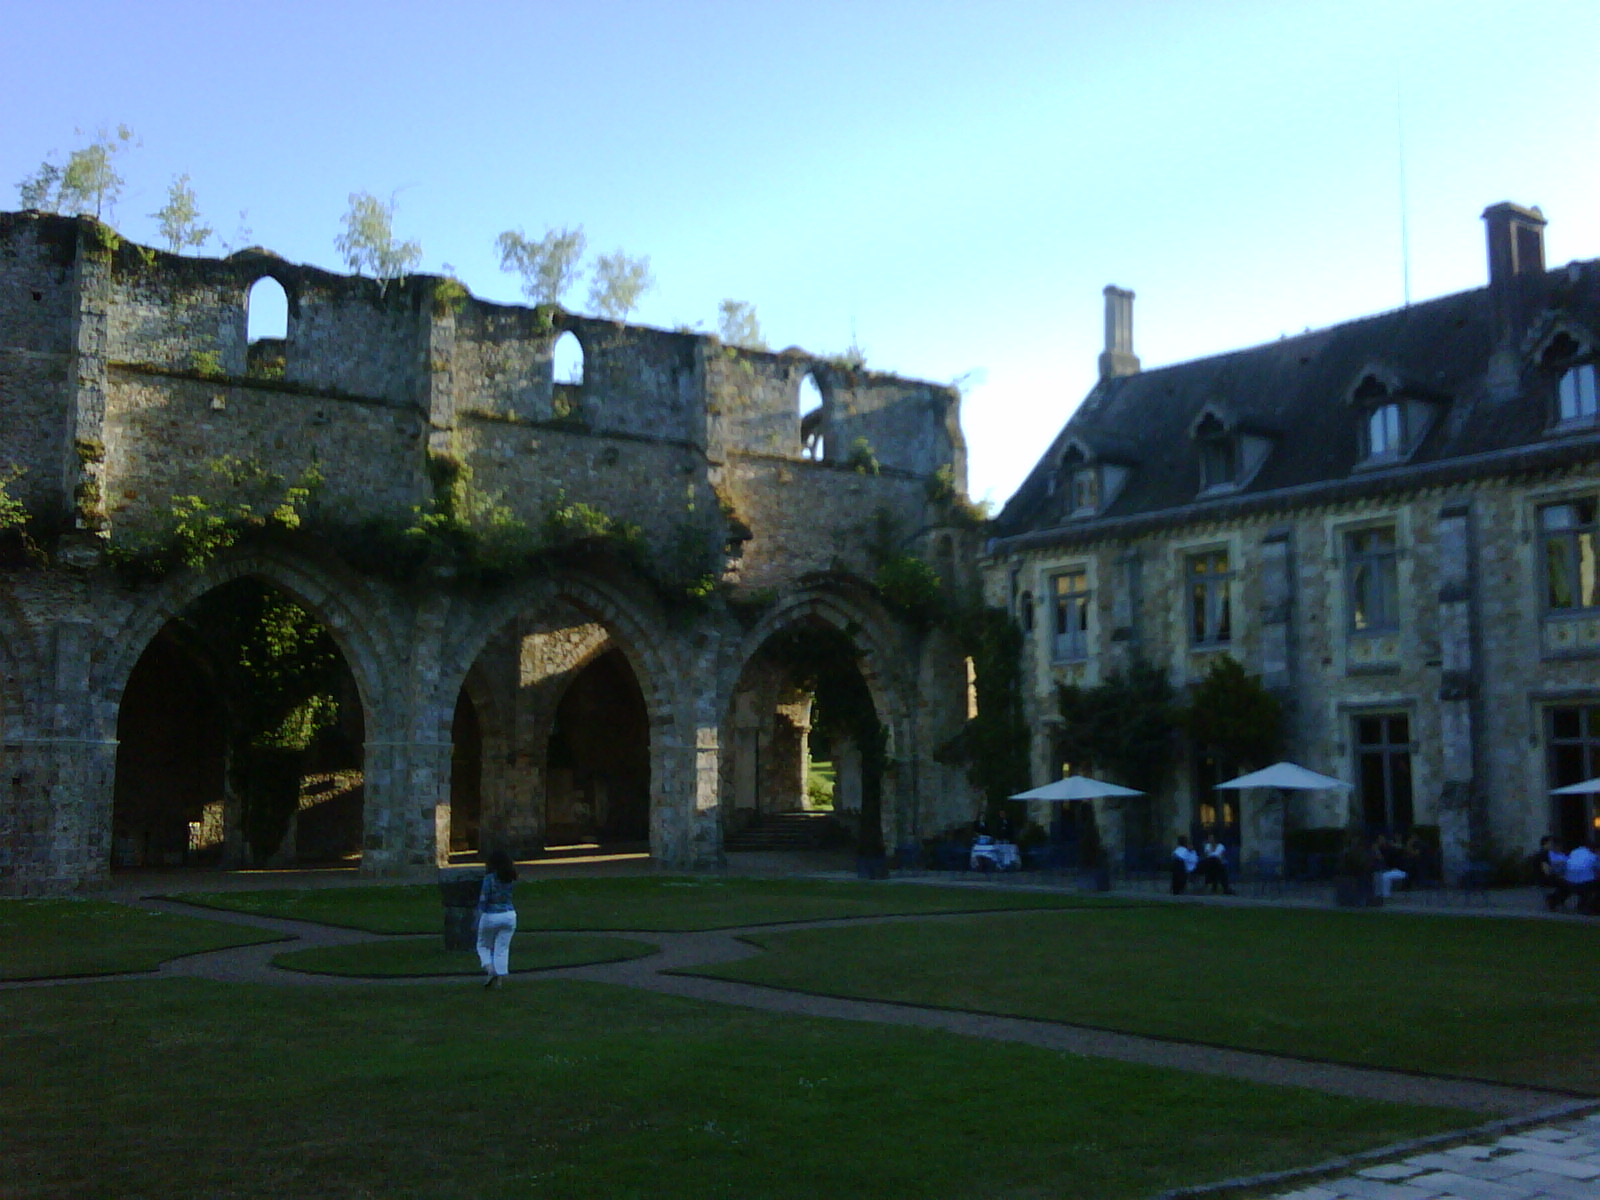 6th OS Workshop - Abbey de Cernay